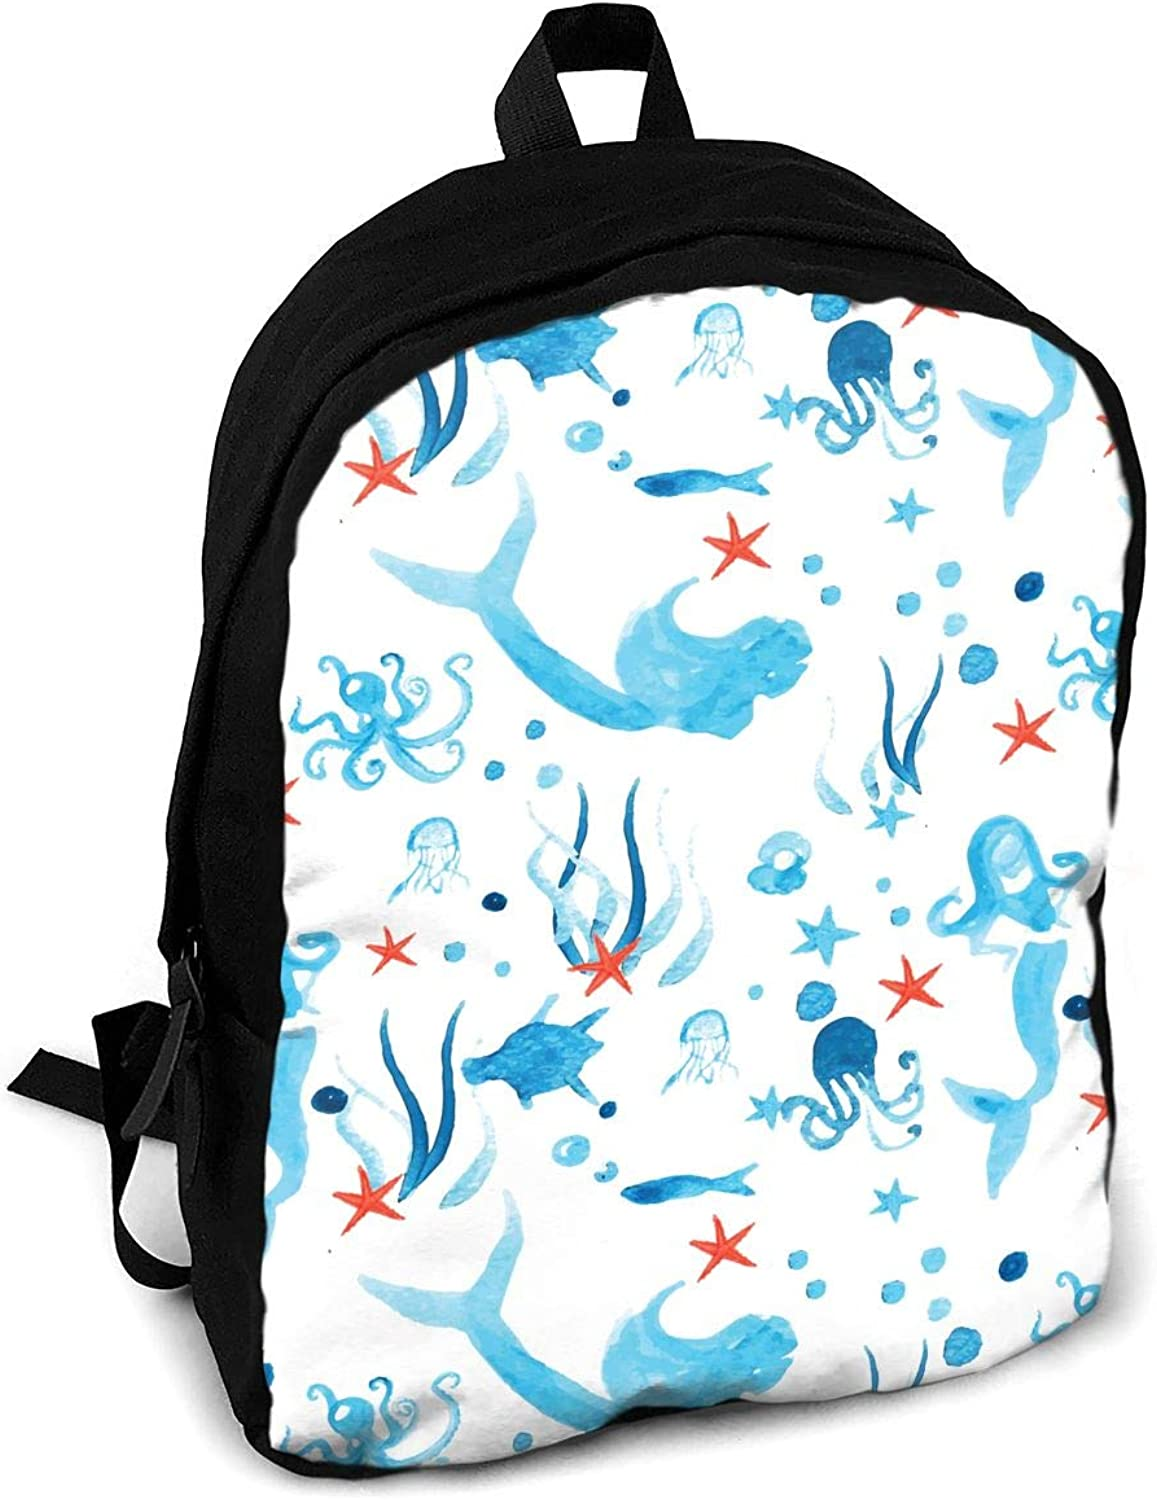 YISHOW Marine Watercolor Women Men for Casual School Bag Outdoor Travel Camping Backpack